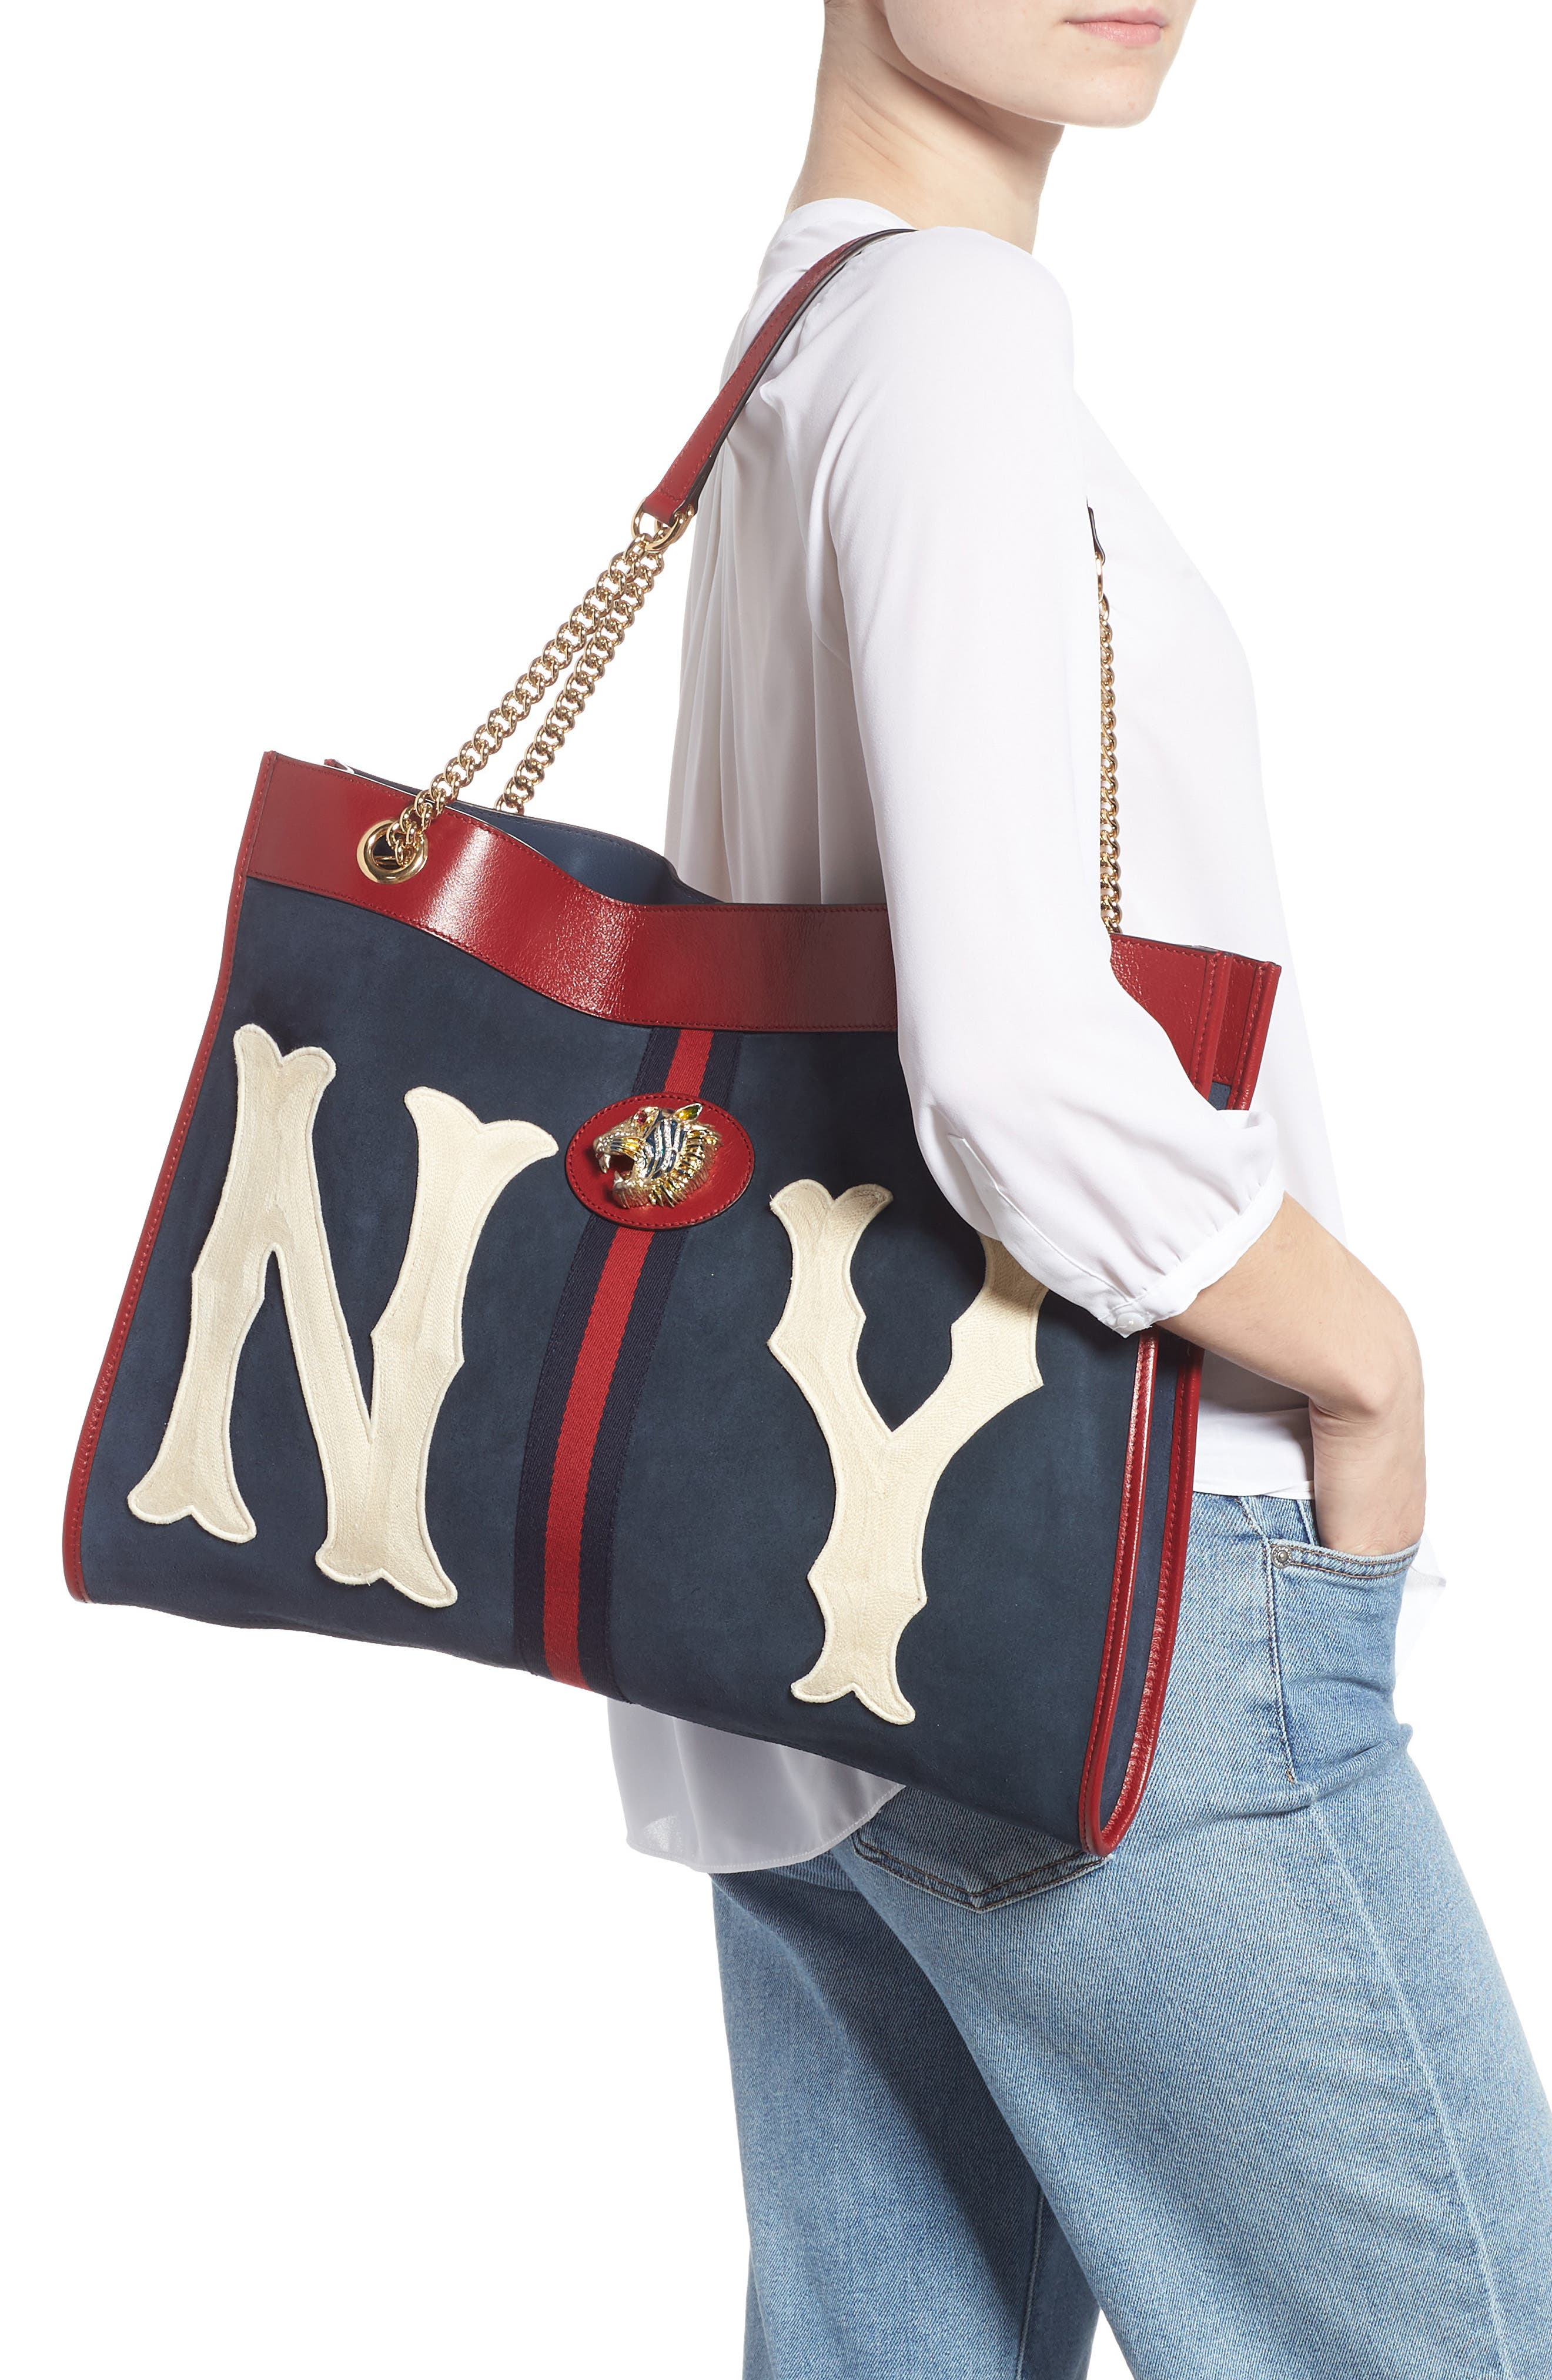 Linea Tiger NY Yankees Suede & Leather Tote,                             Alternate thumbnail 2, color,                             NEW BLUE/ CERISE/ BLUE RED